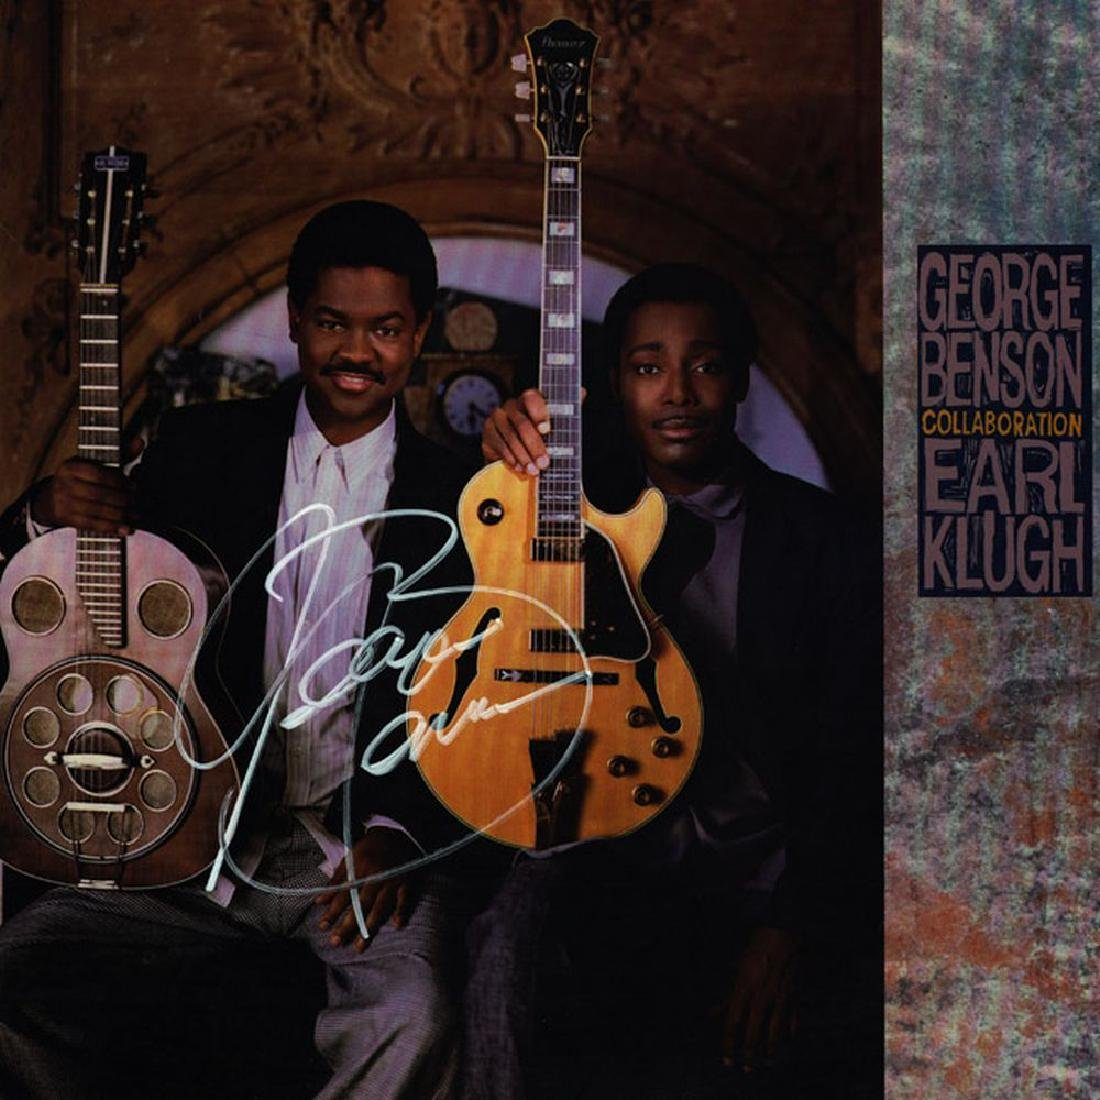 George Benson and Earl Klugh Collaboration Signed Album